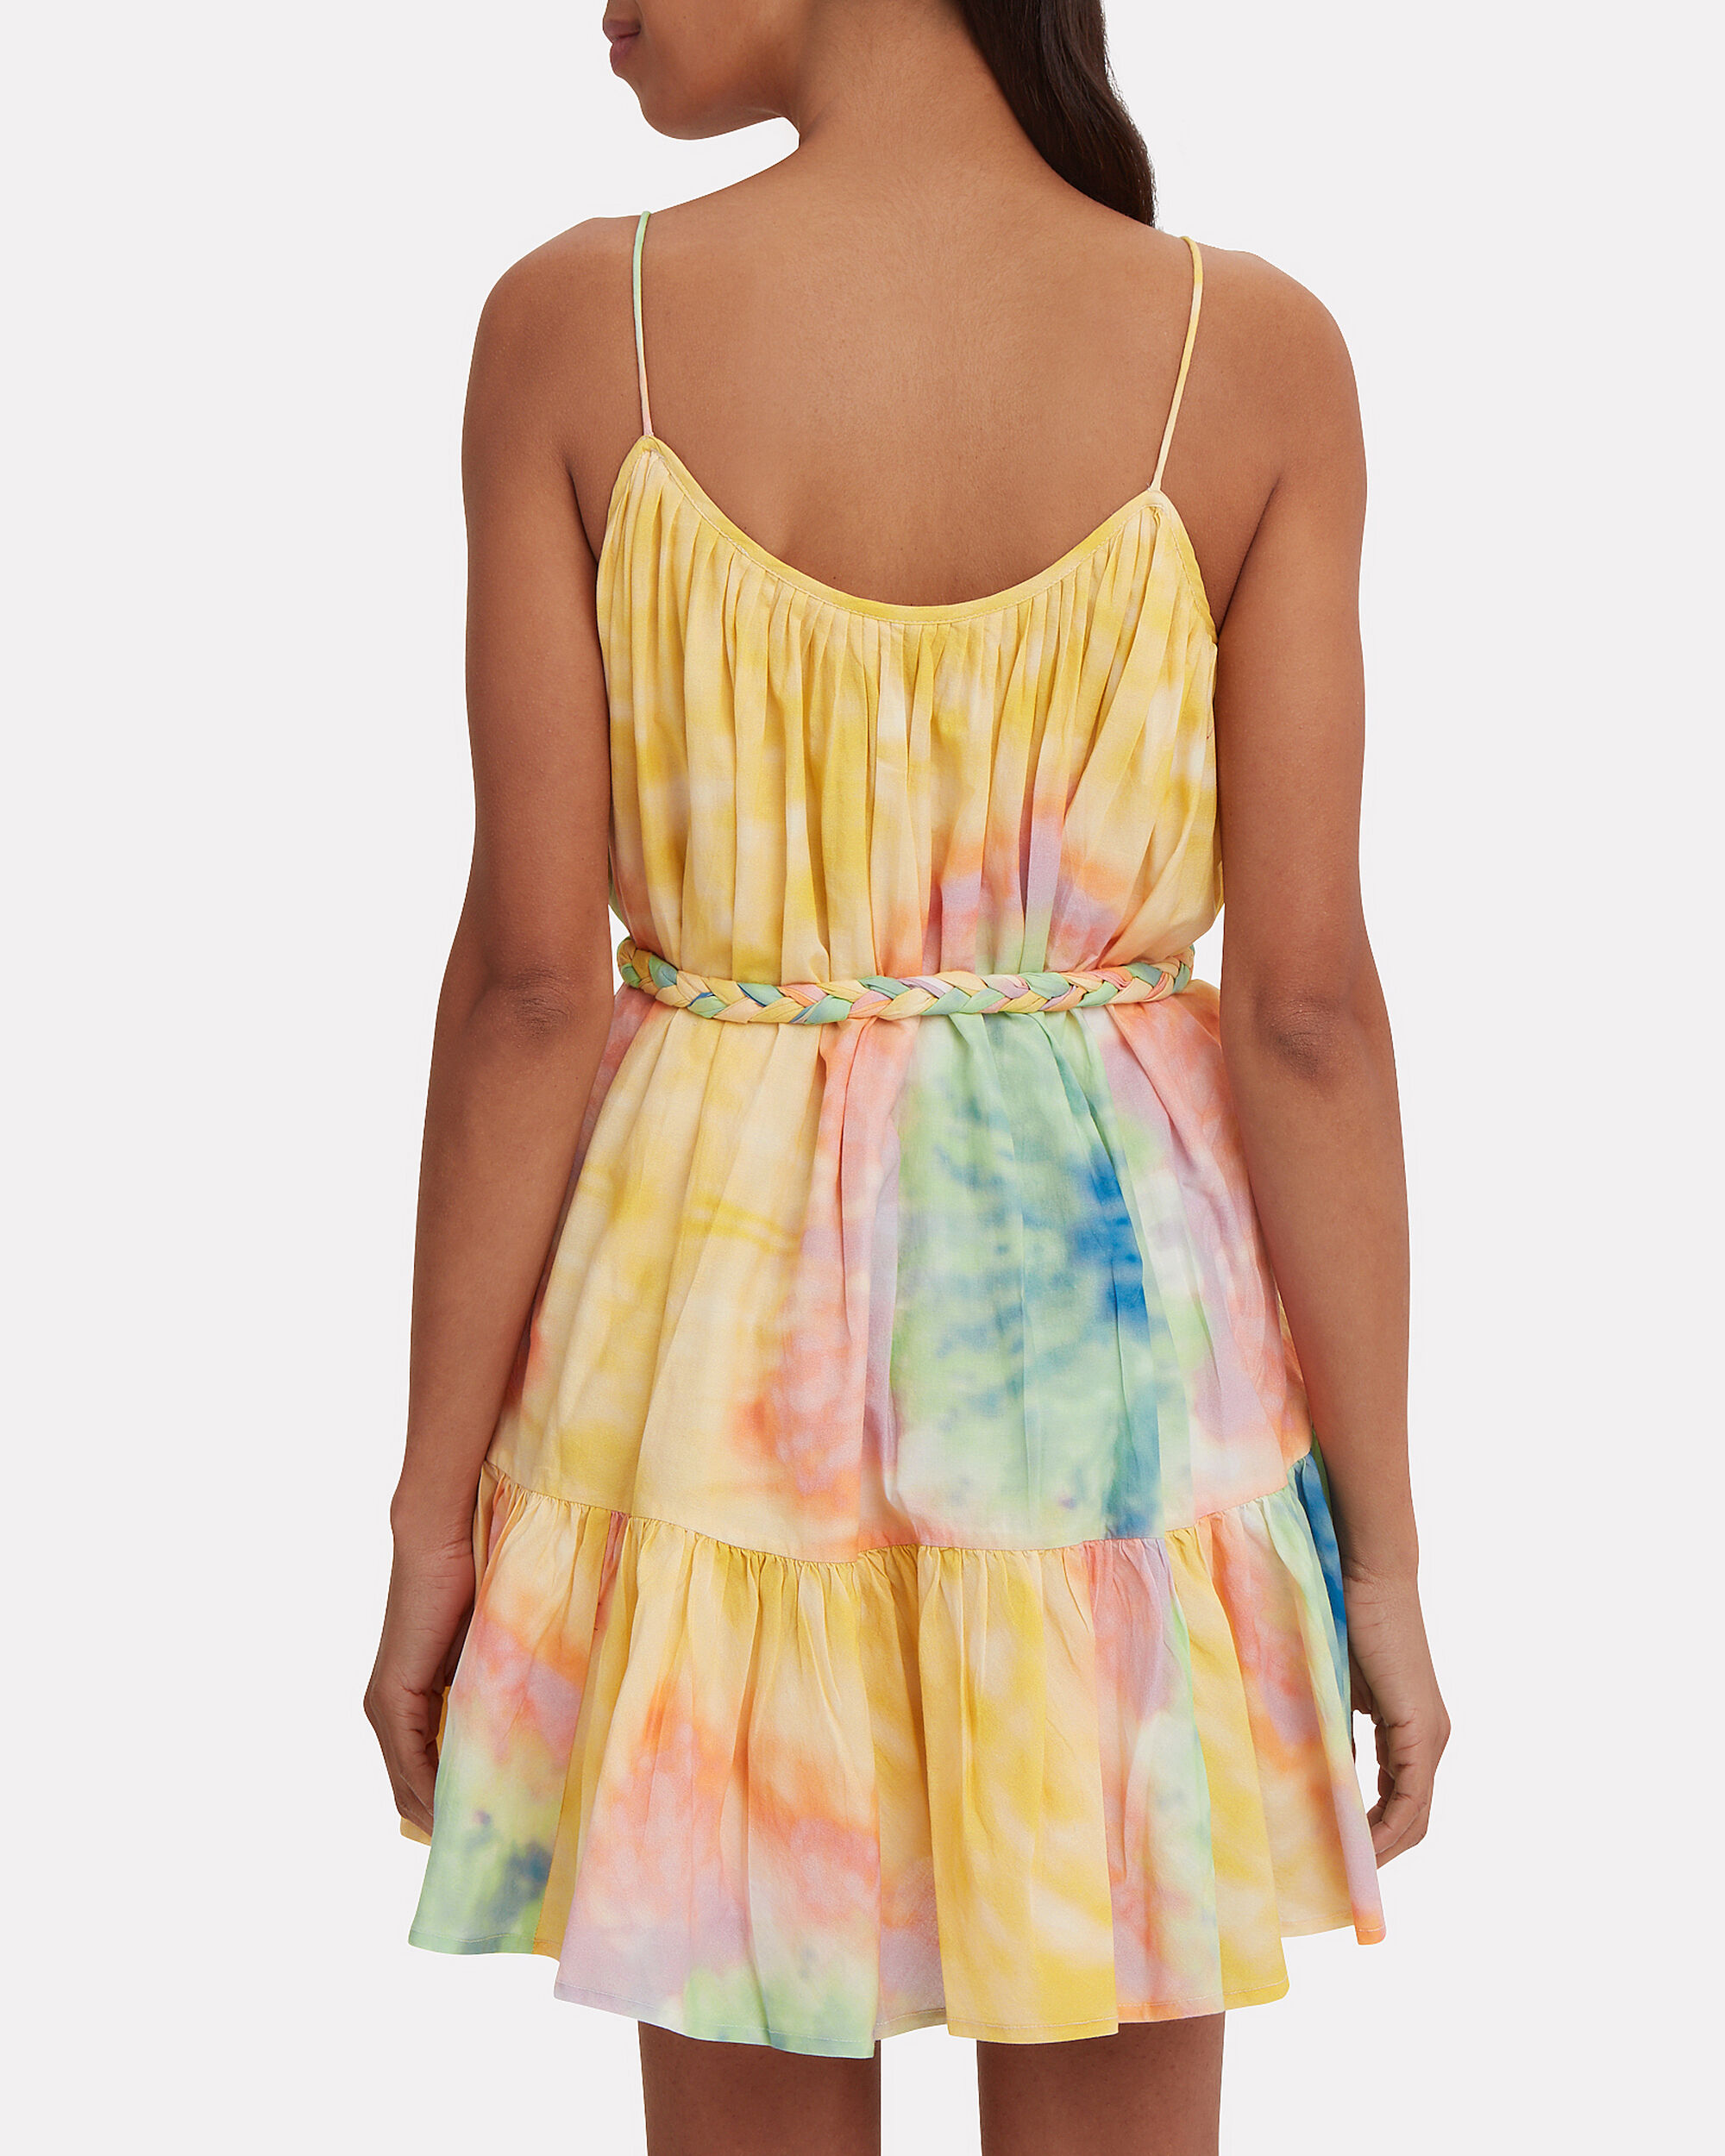 Nala Tie-Dye Mini Dress, TIE-DYE, hi-res